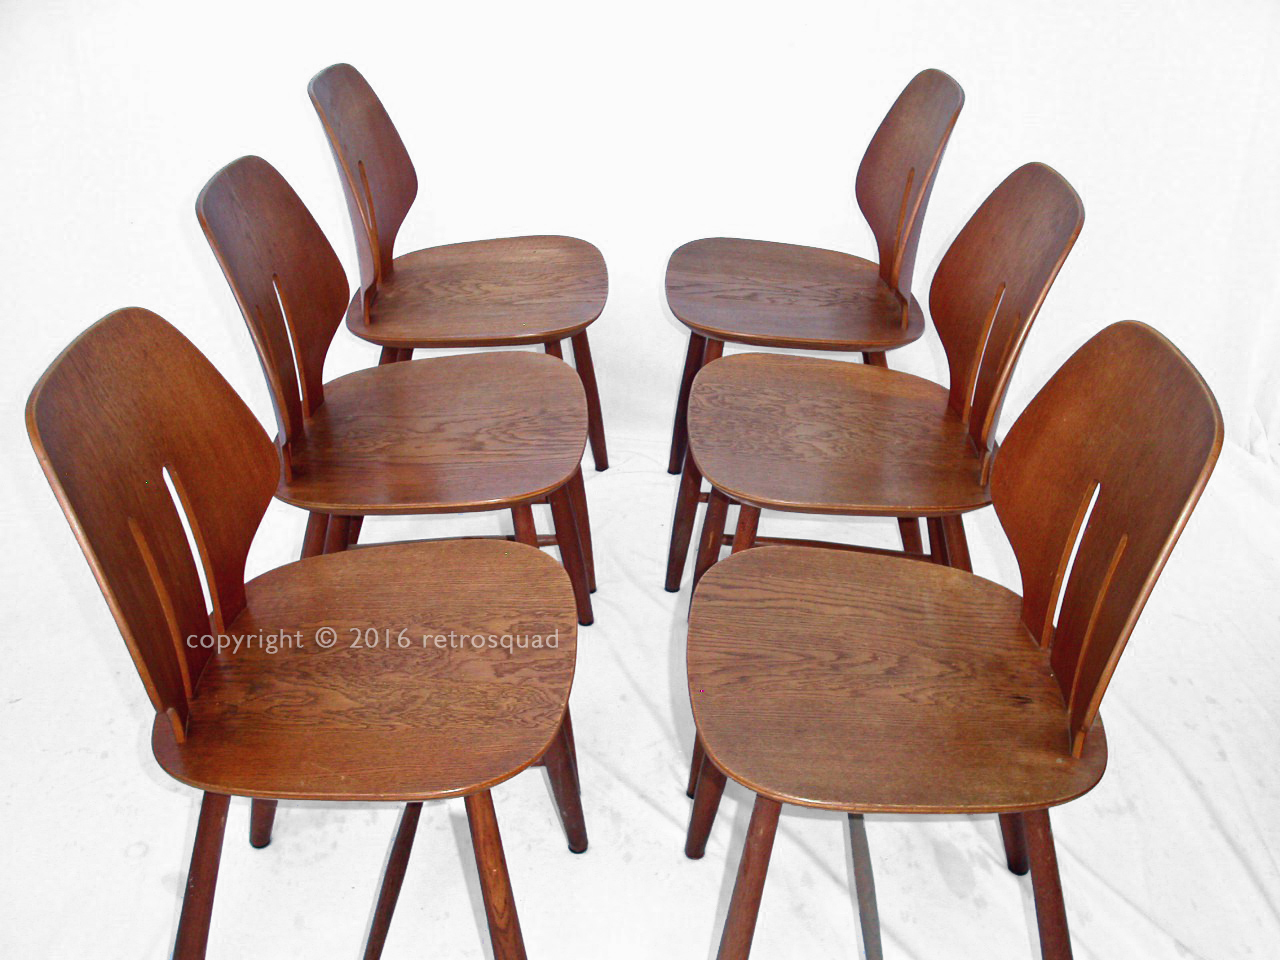 6 Modern Dining Chairs By Ejvind A. Johanss For FDB Mobler Vintage 1960 06